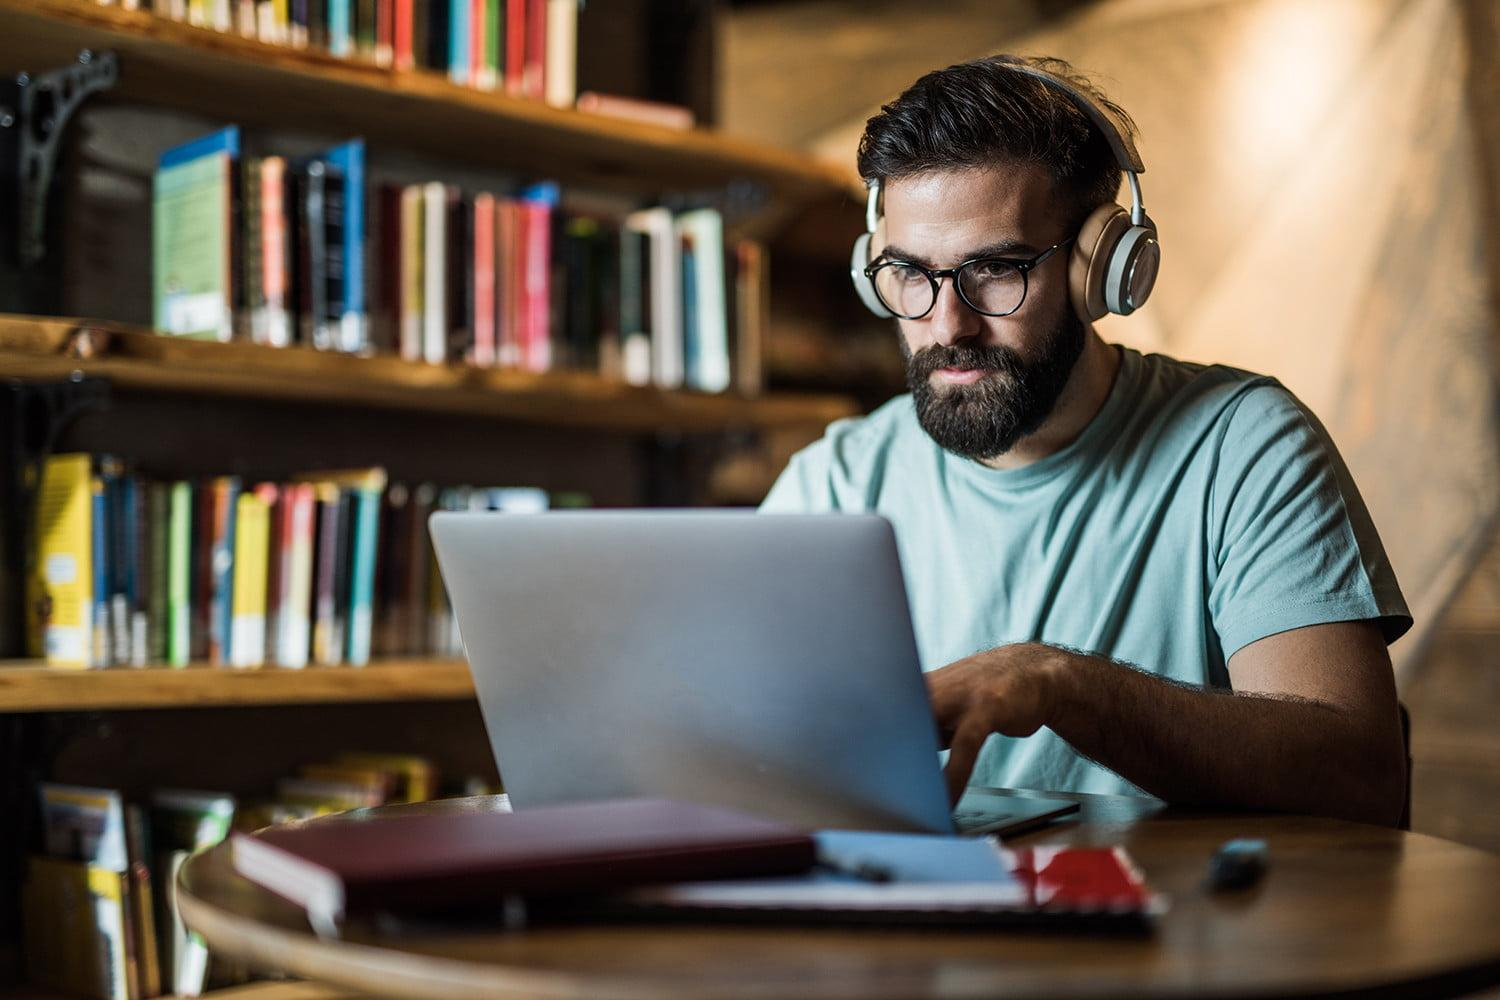 Learn Adobe Photoshop, Microsoft Excel, Python for free with Pluralsight